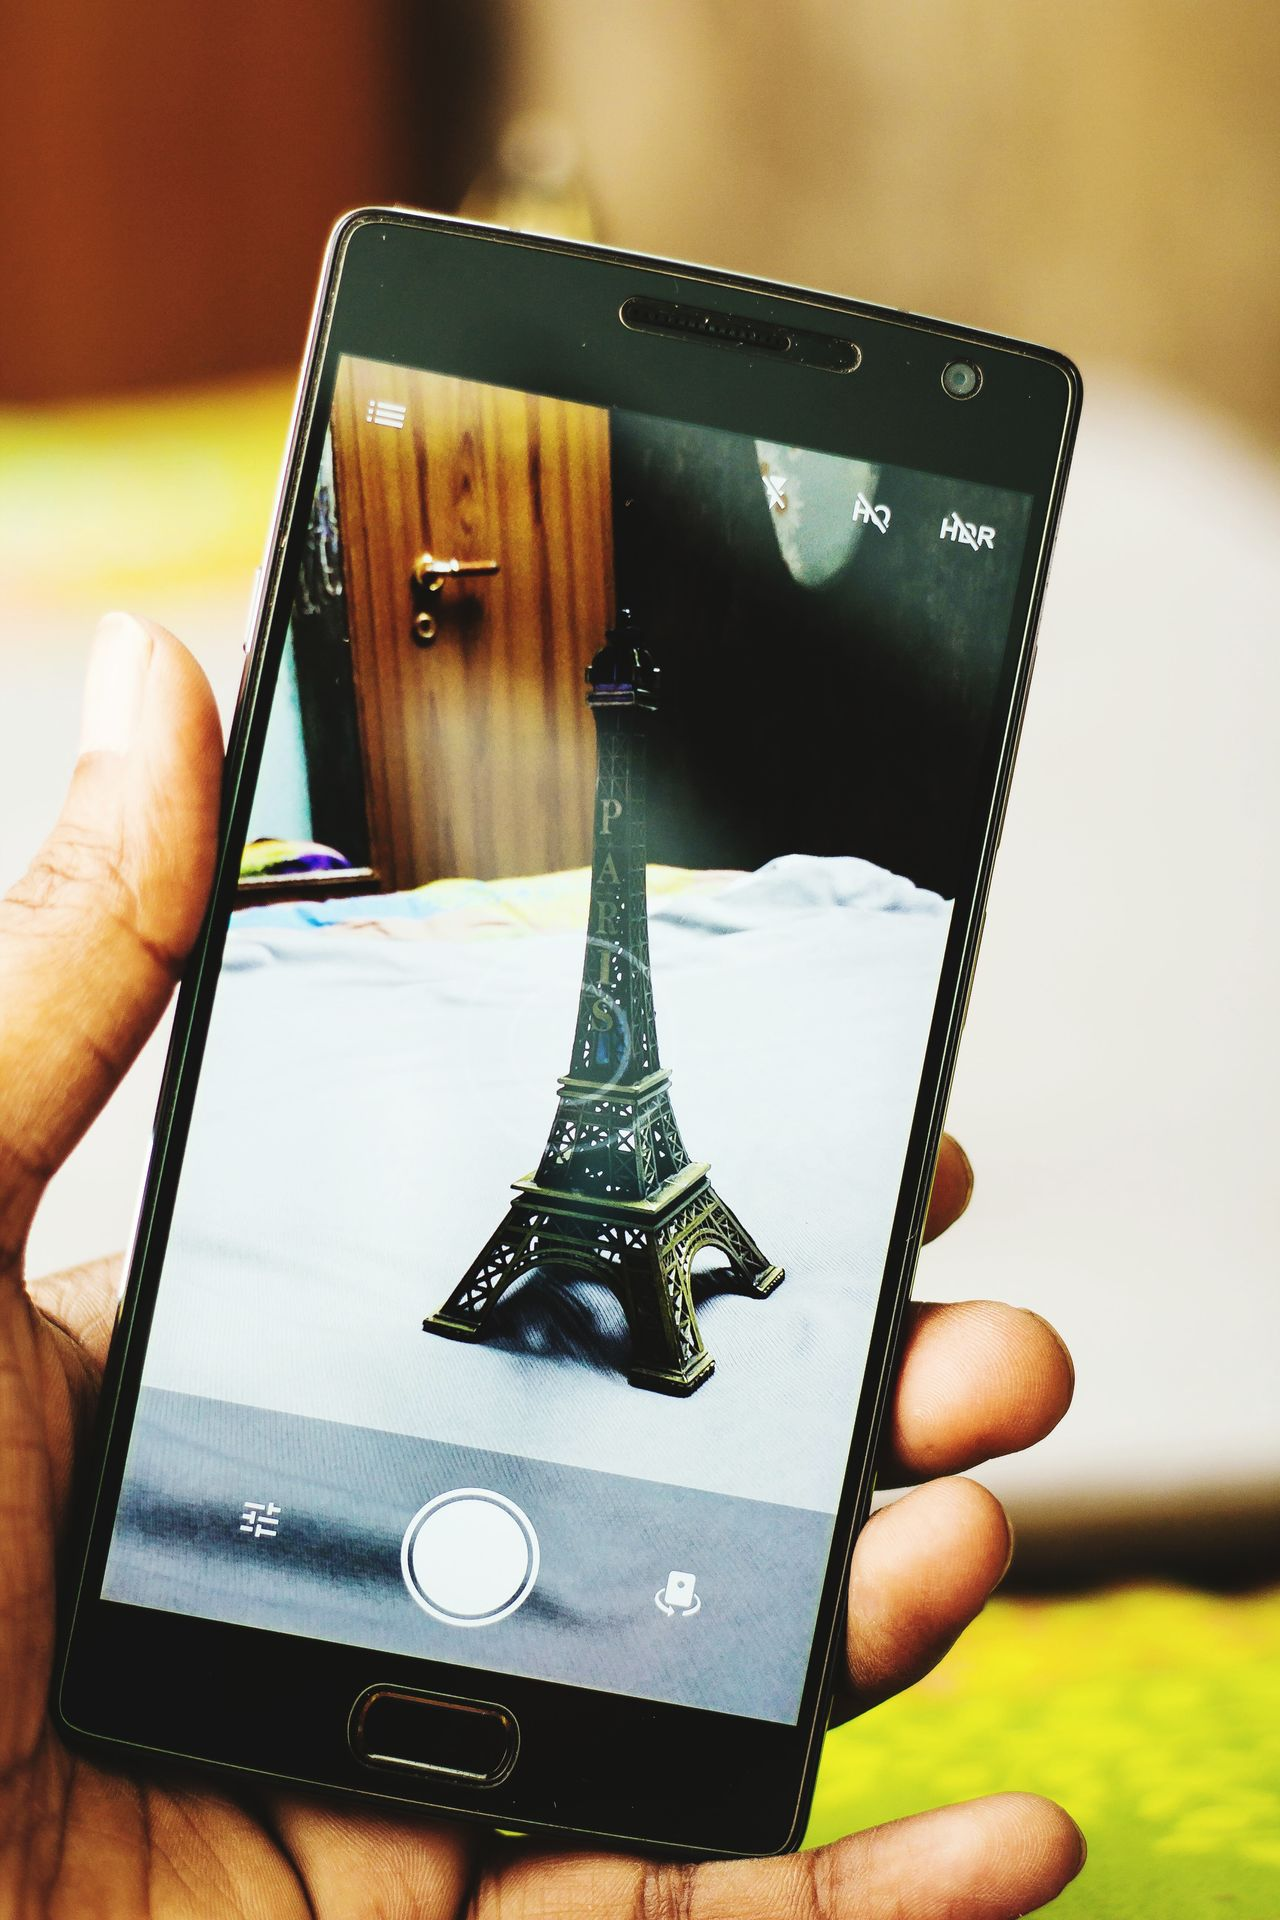 In one plus two camera. Eiffel Tower Wireless Technology Human Hand Human Body Part One Person Close-up Technology Coin Indoors  One Man Only People Only Men Day Adult Extraordinary  Oneplus2 Vegetarian Food Bowl Indoors  Indoors  Indoors  Freshness No People Love Flower Nature